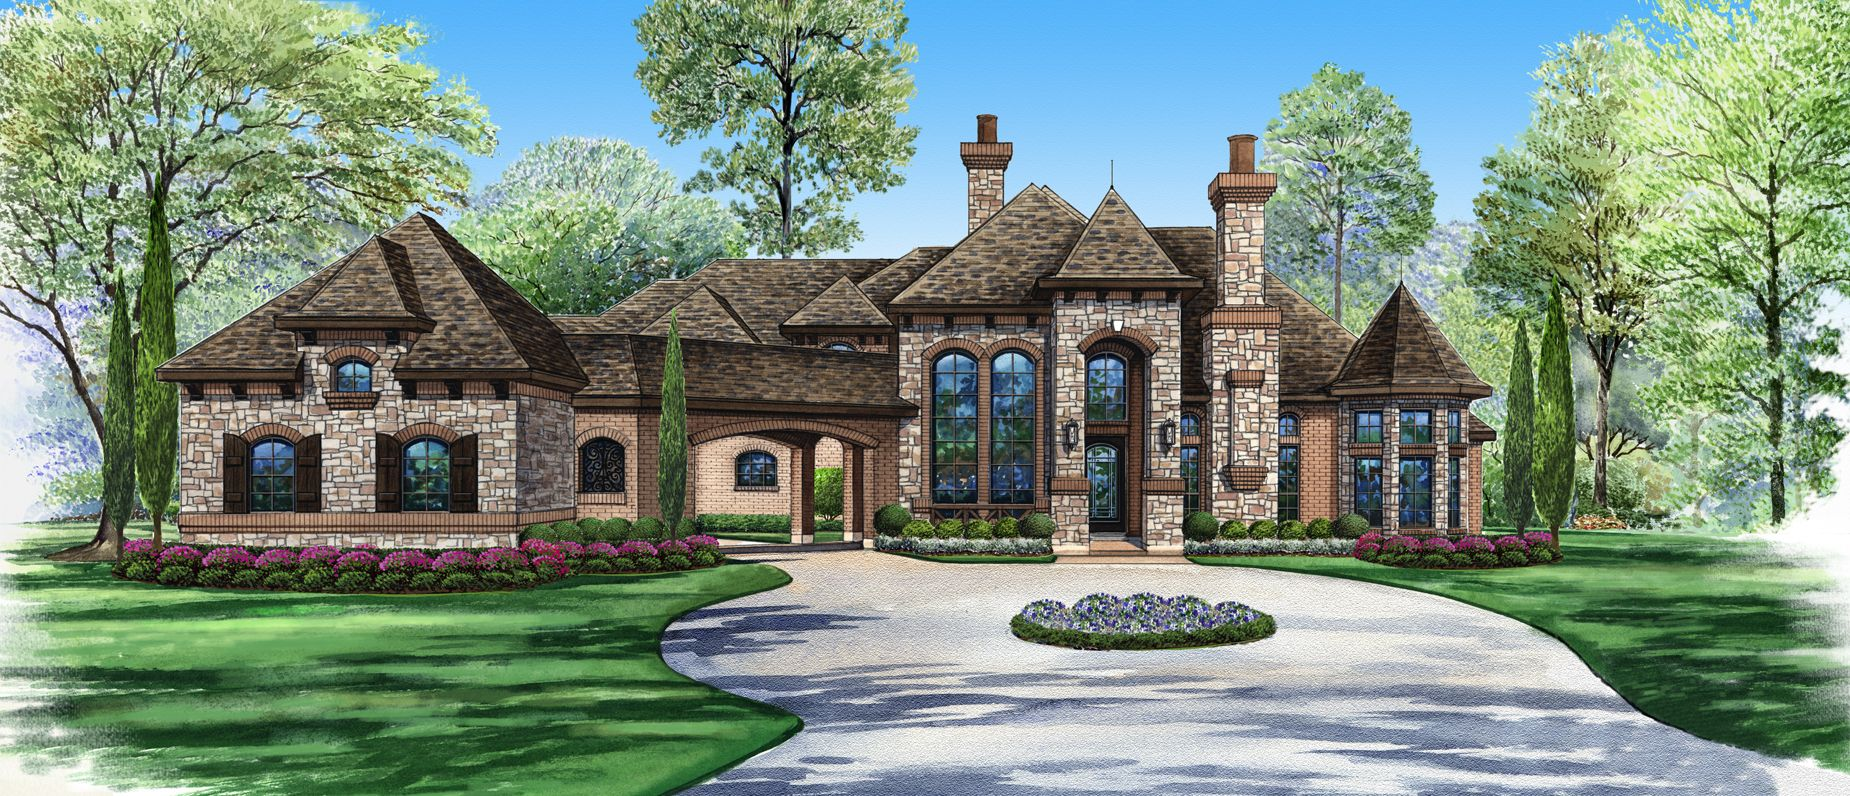 Eisenhower house plan from 6500 for Luxury houses plans